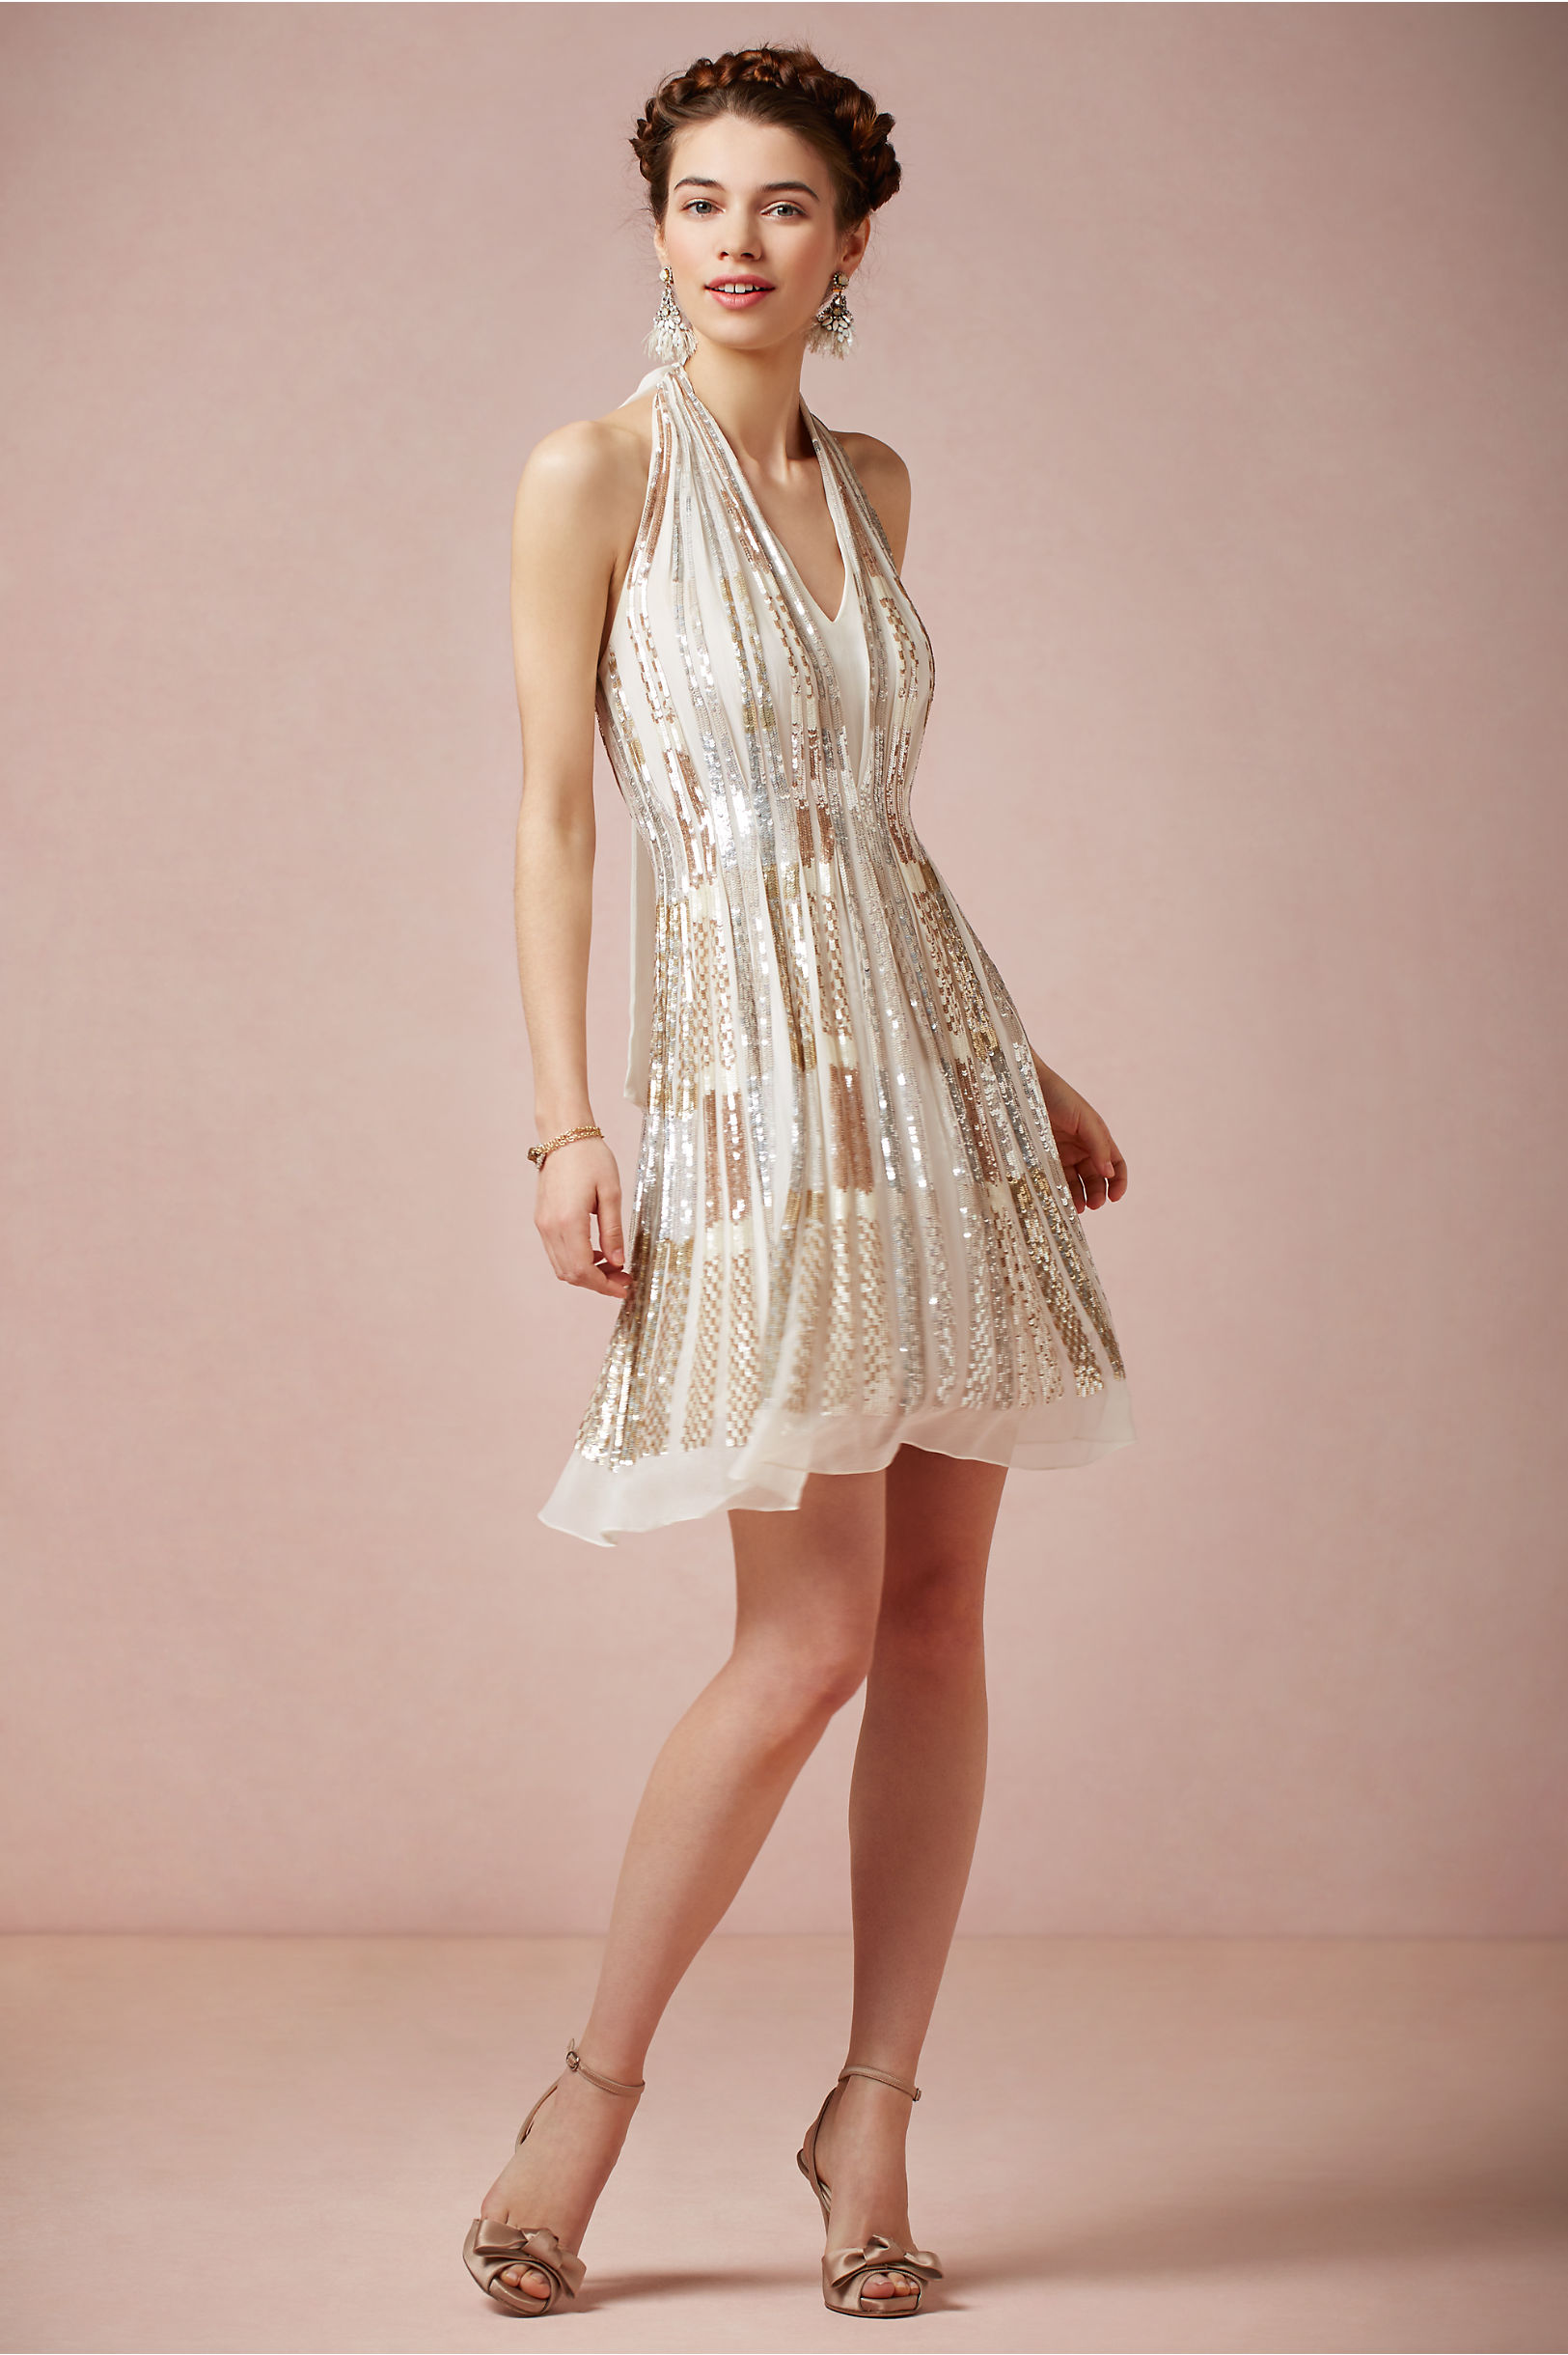 Sparkly Dresses: Sparkly Dresses For Wedding Guest